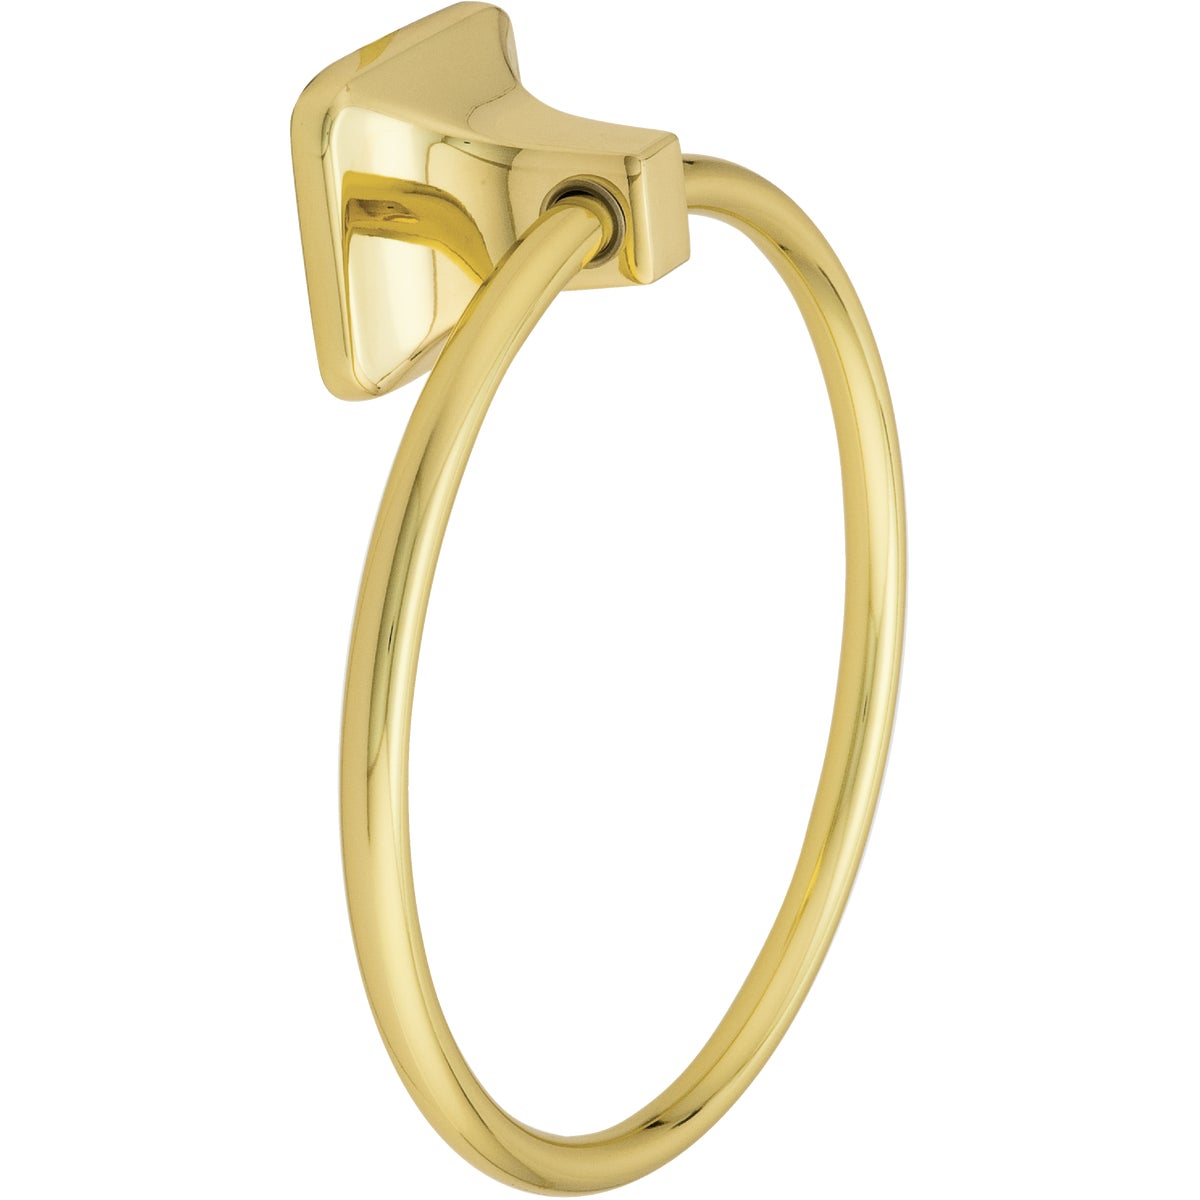 PB TOWEL RING - 409098 by Do it Best